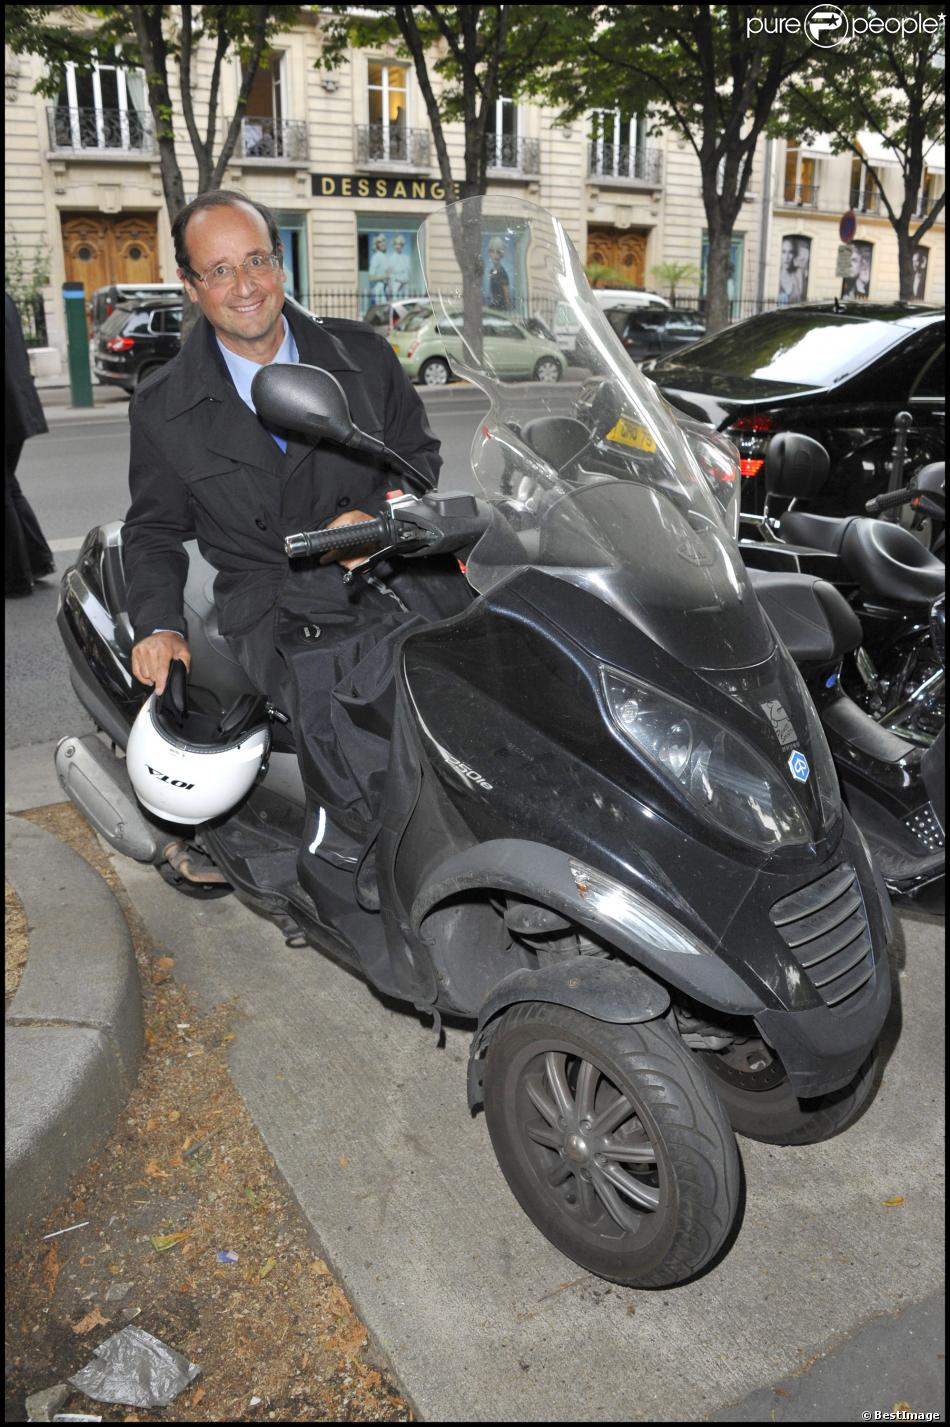 gayetgate fran ois hollande son casque de scooter en rupture de stock purepeople. Black Bedroom Furniture Sets. Home Design Ideas